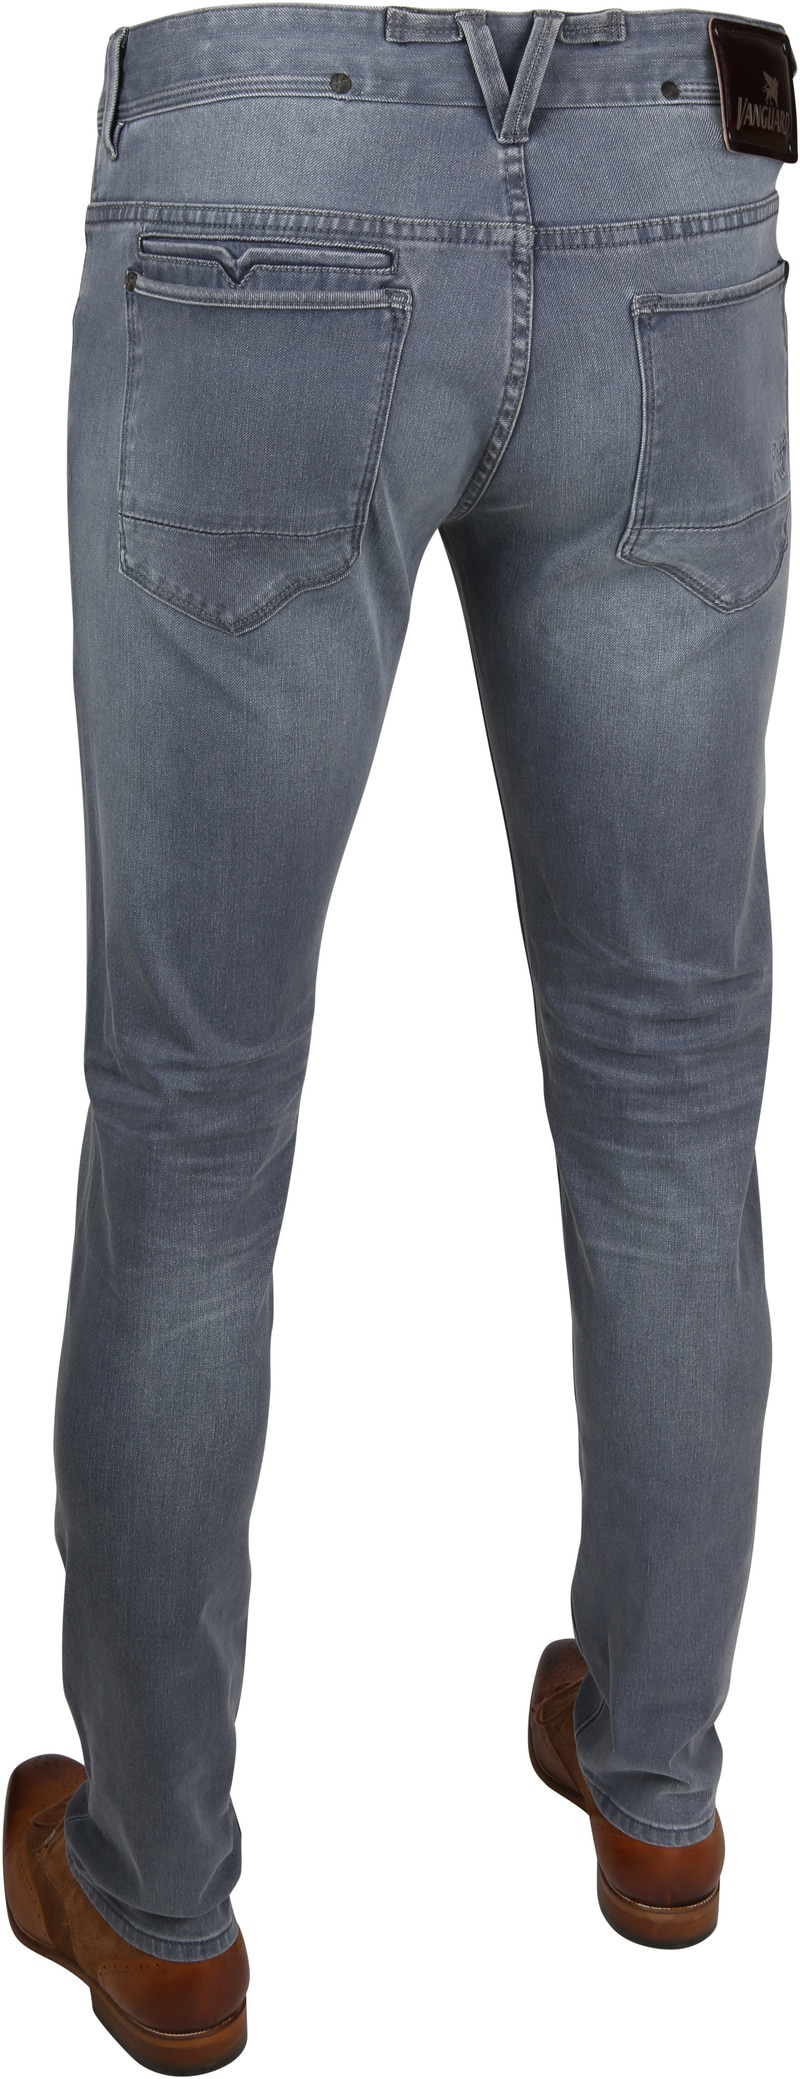 Vanguard V850 Rider Grey Jeans photo 3